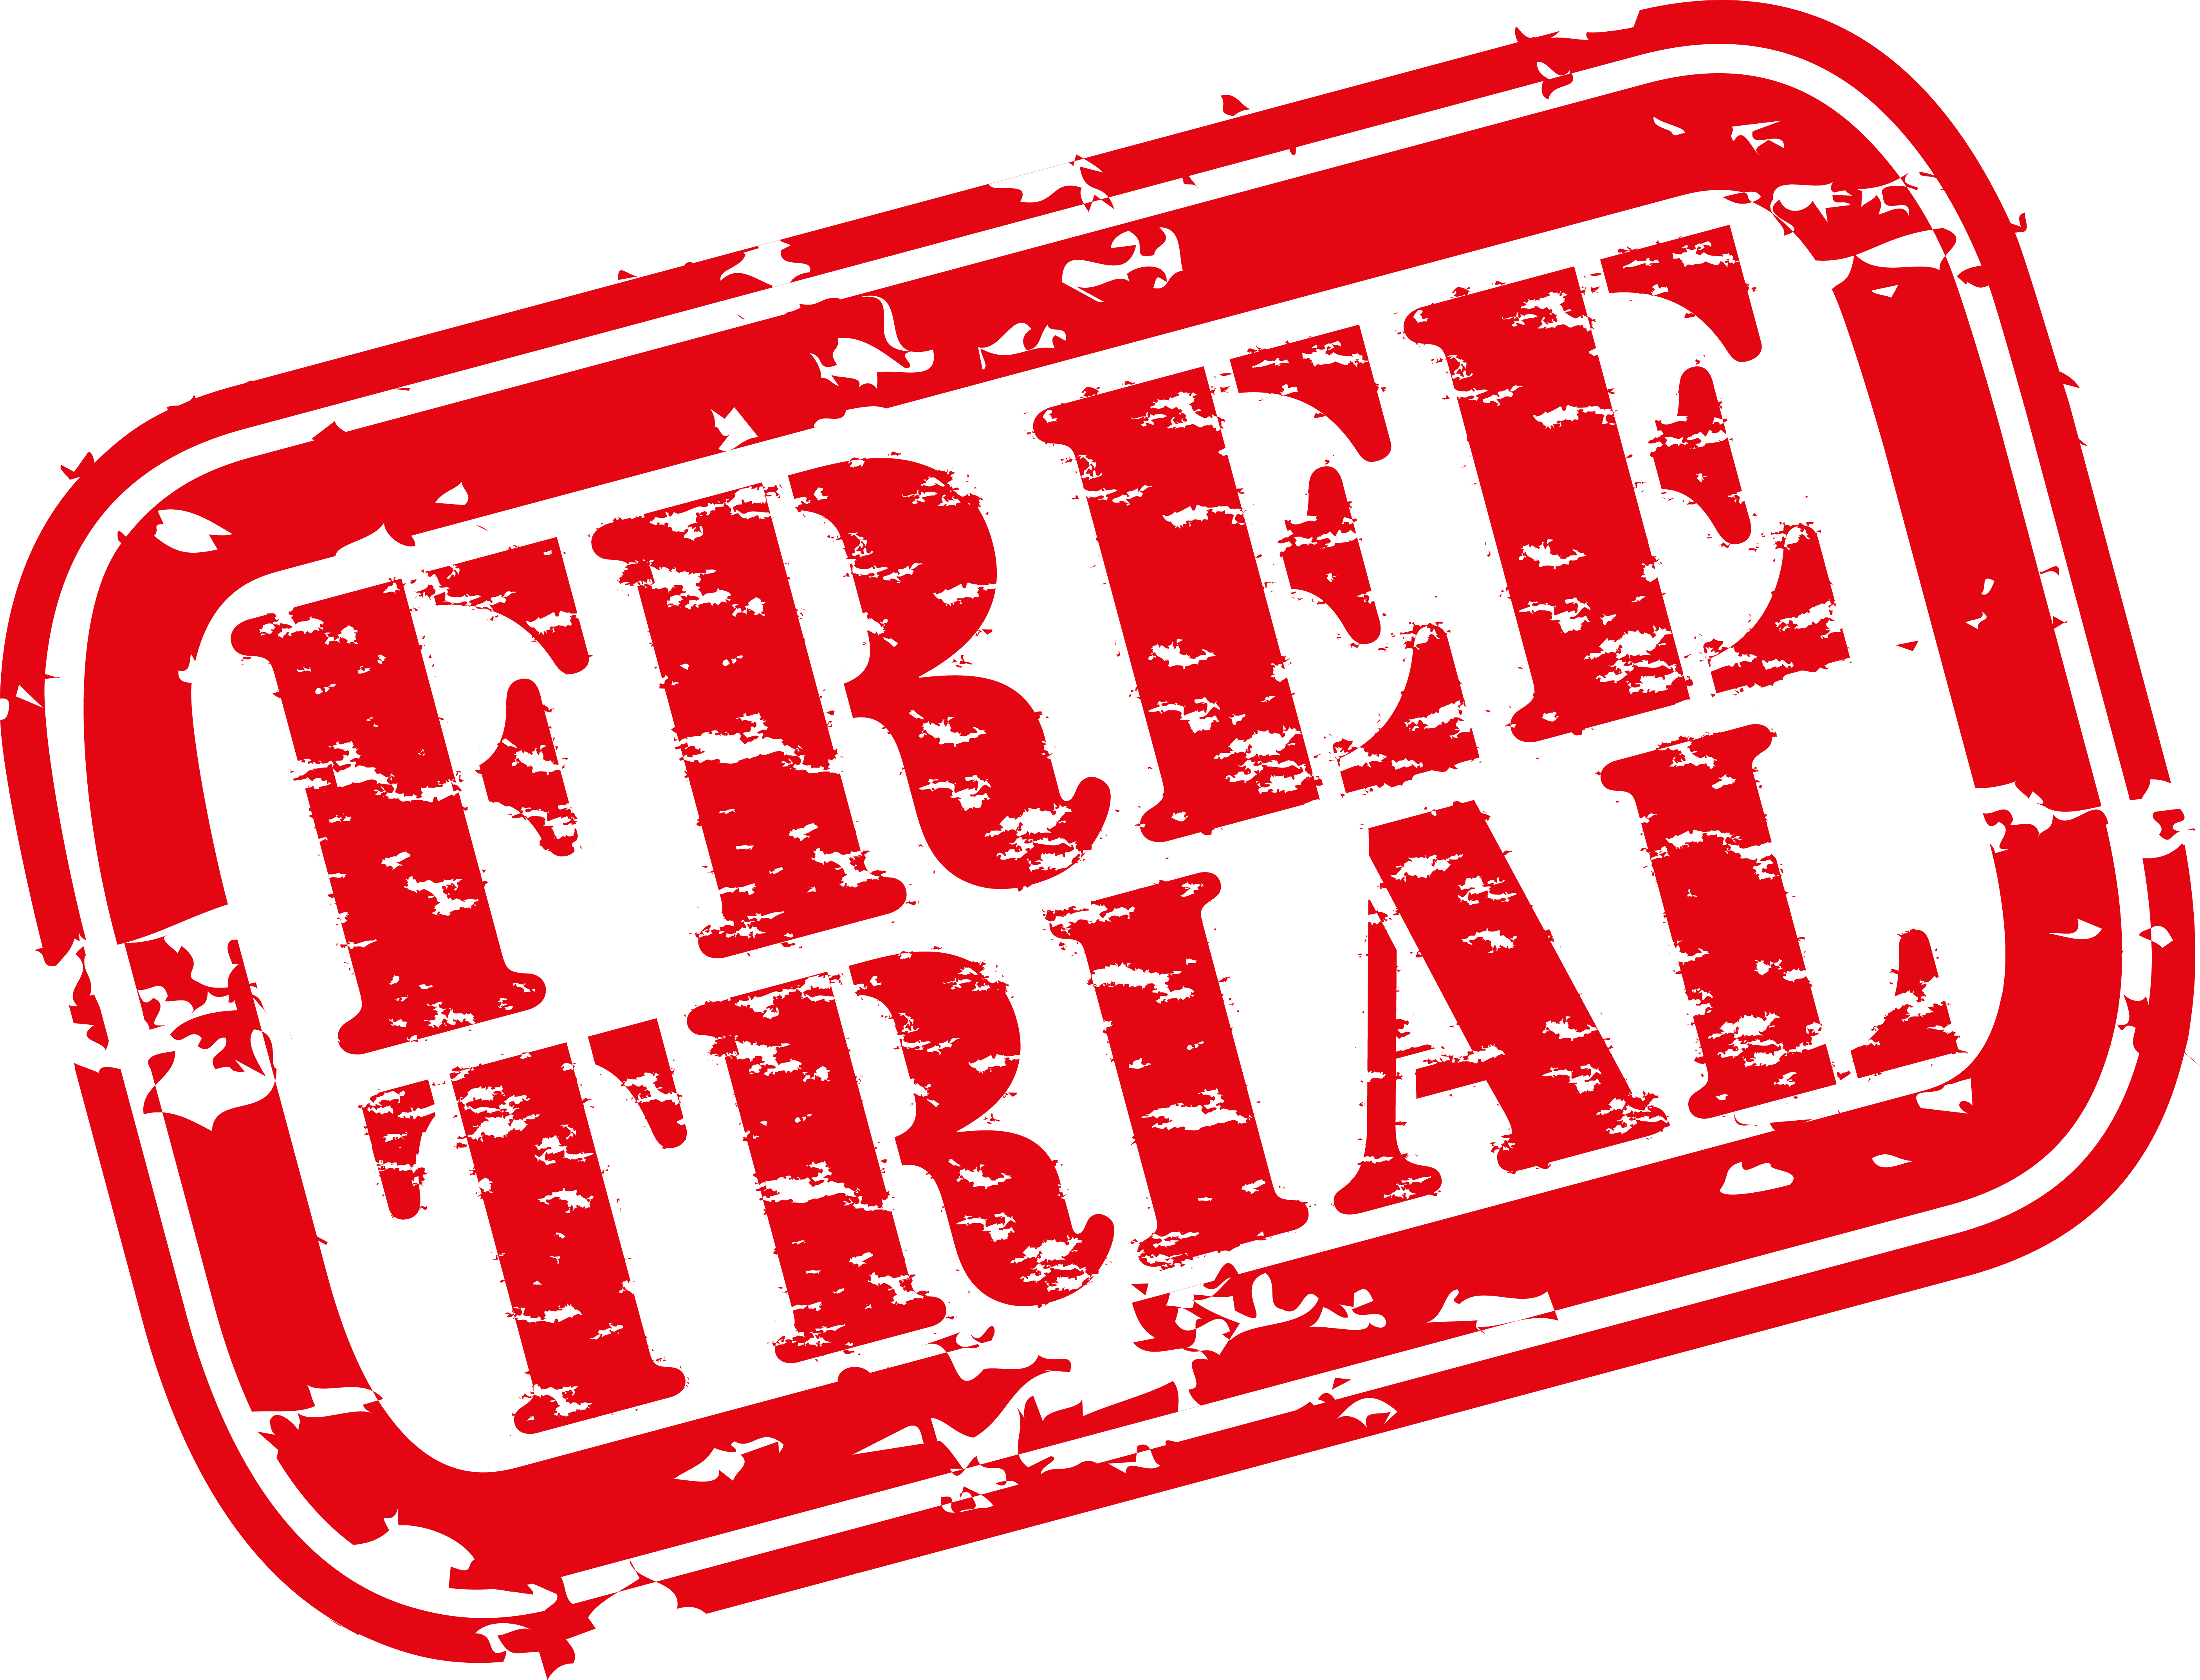 Free Trial Email Scam